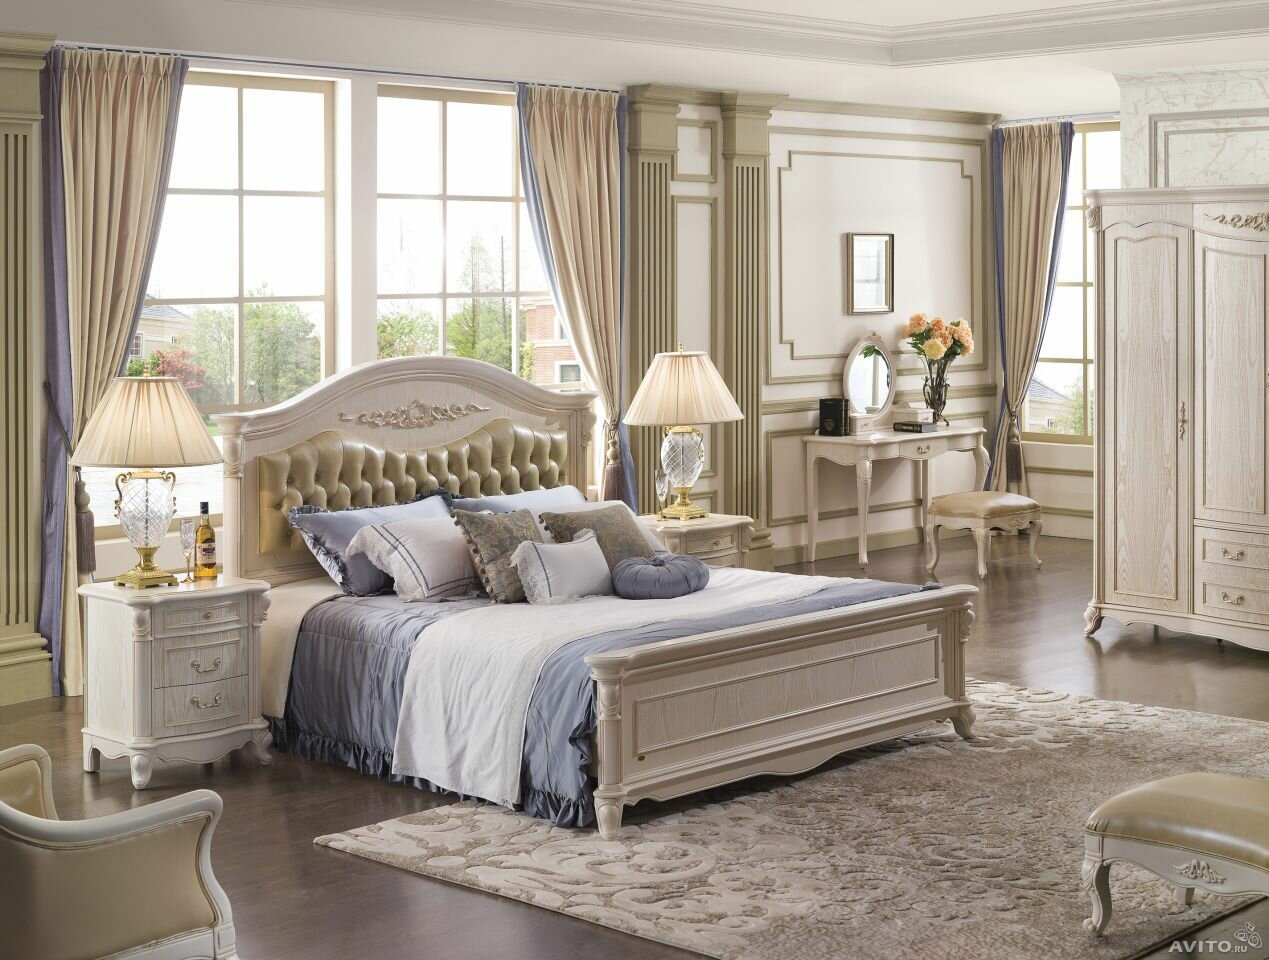 15 world 39 s most beautiful bedrooms mostbeautifulthings for 5 bedroom